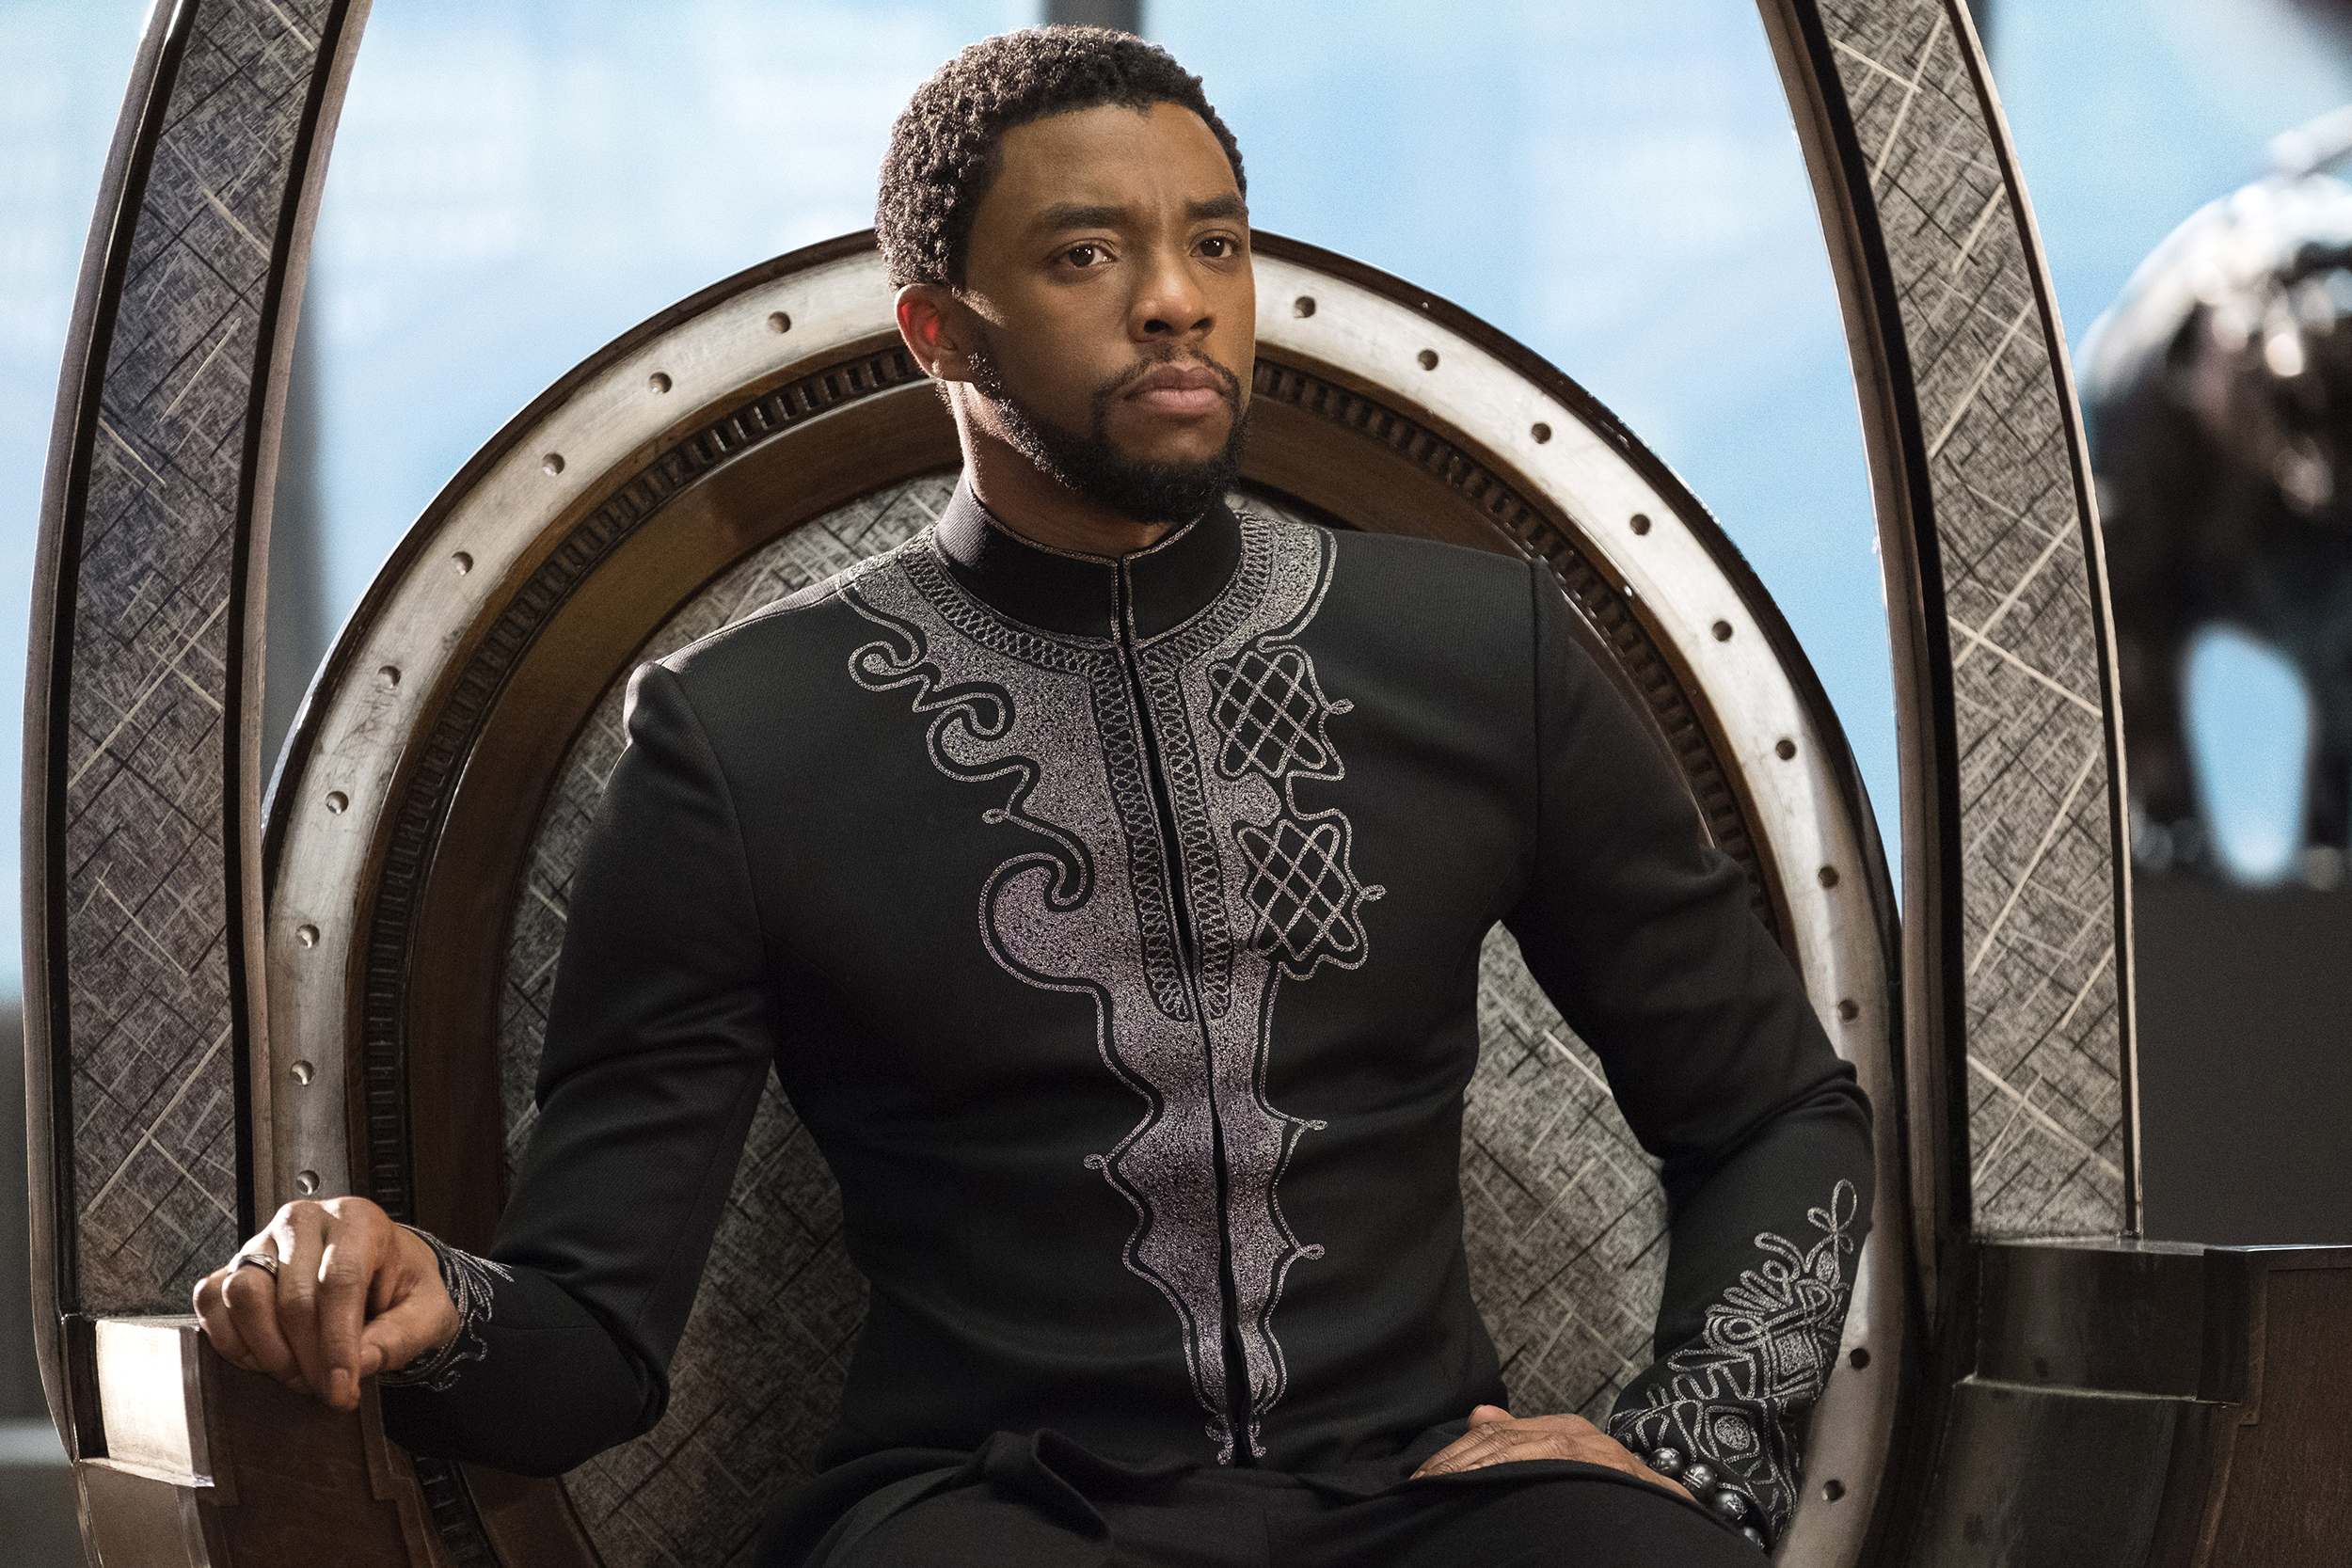 Black Panther Star Chadwick Boseman Dies After Battle With Cancer